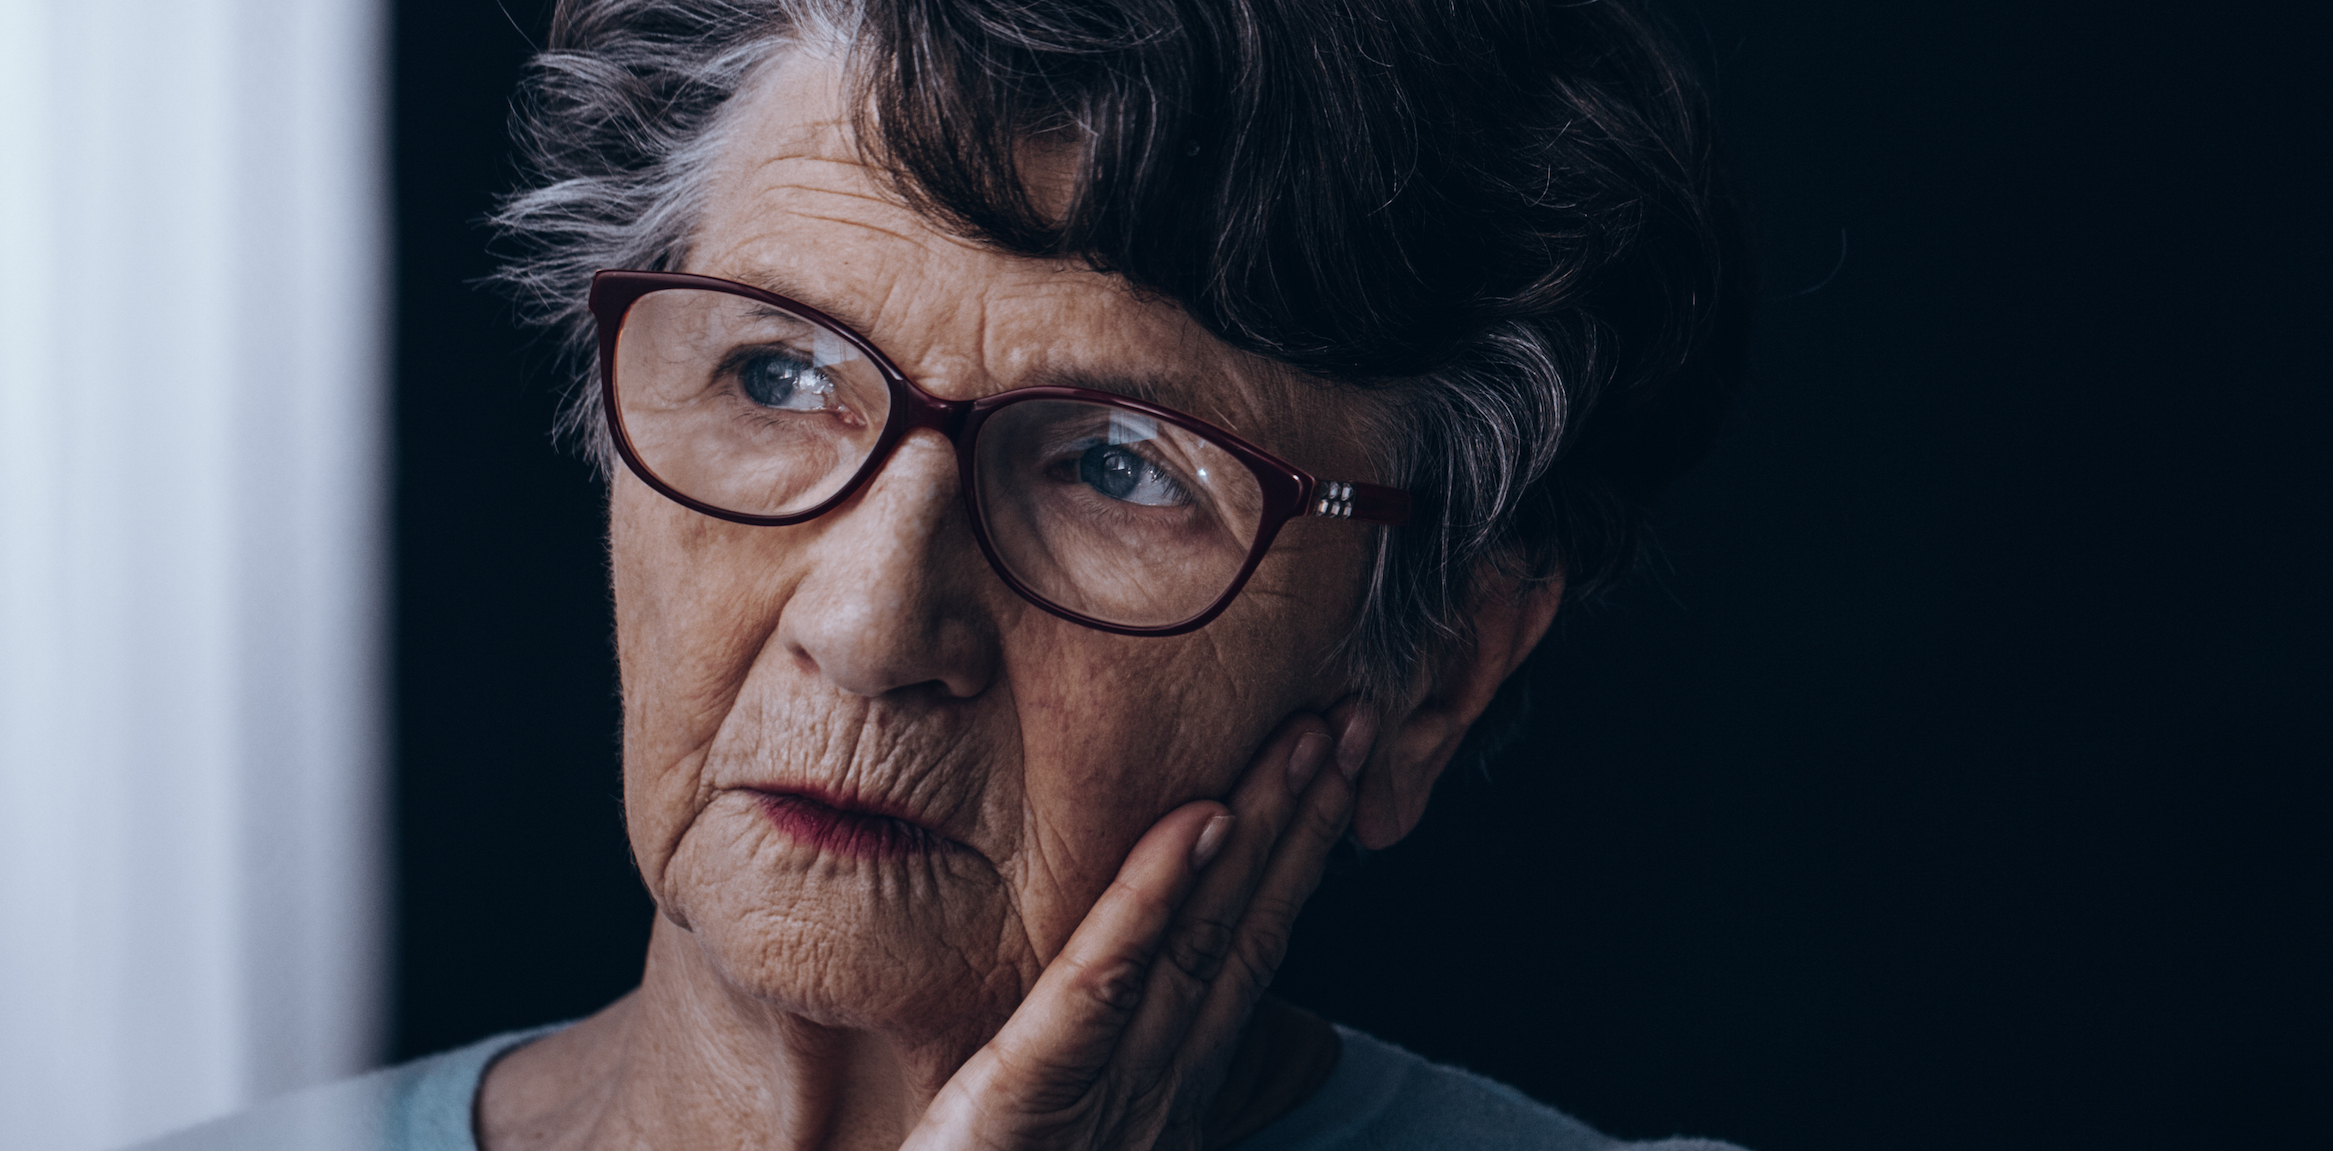 Around 15 million Americans will have mild cognitive impairment or full-blown Alzheimer's dementia by the year 2060.